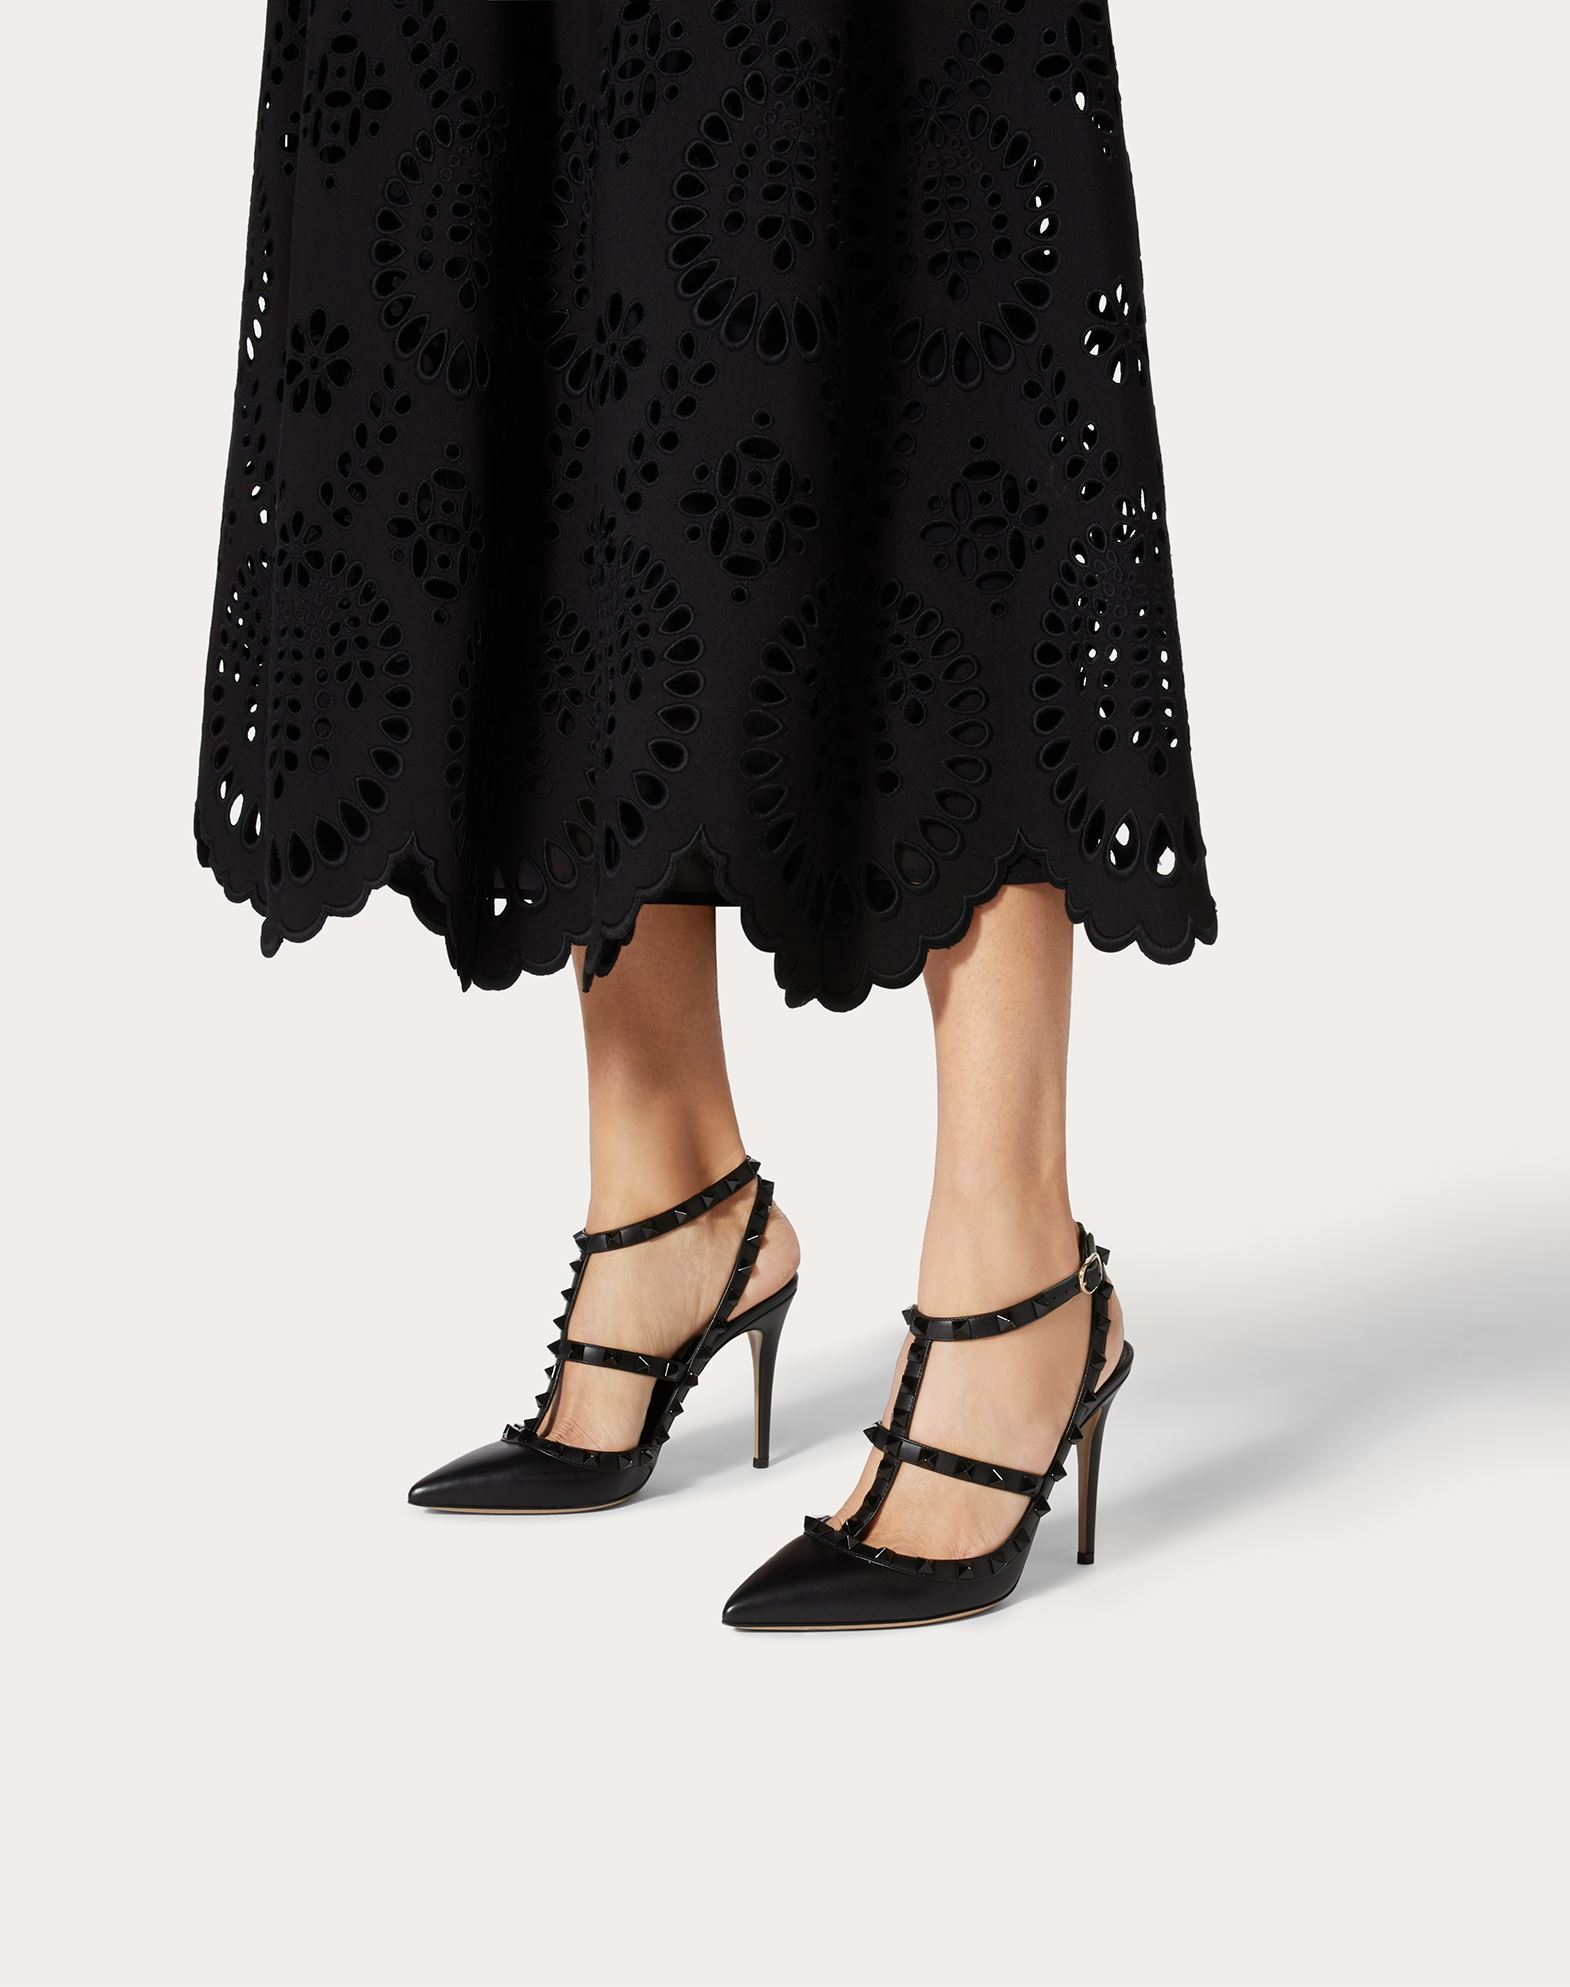 VALENTINO GARAVANI Rockstud Court HIGH HEEL PUMPS D b